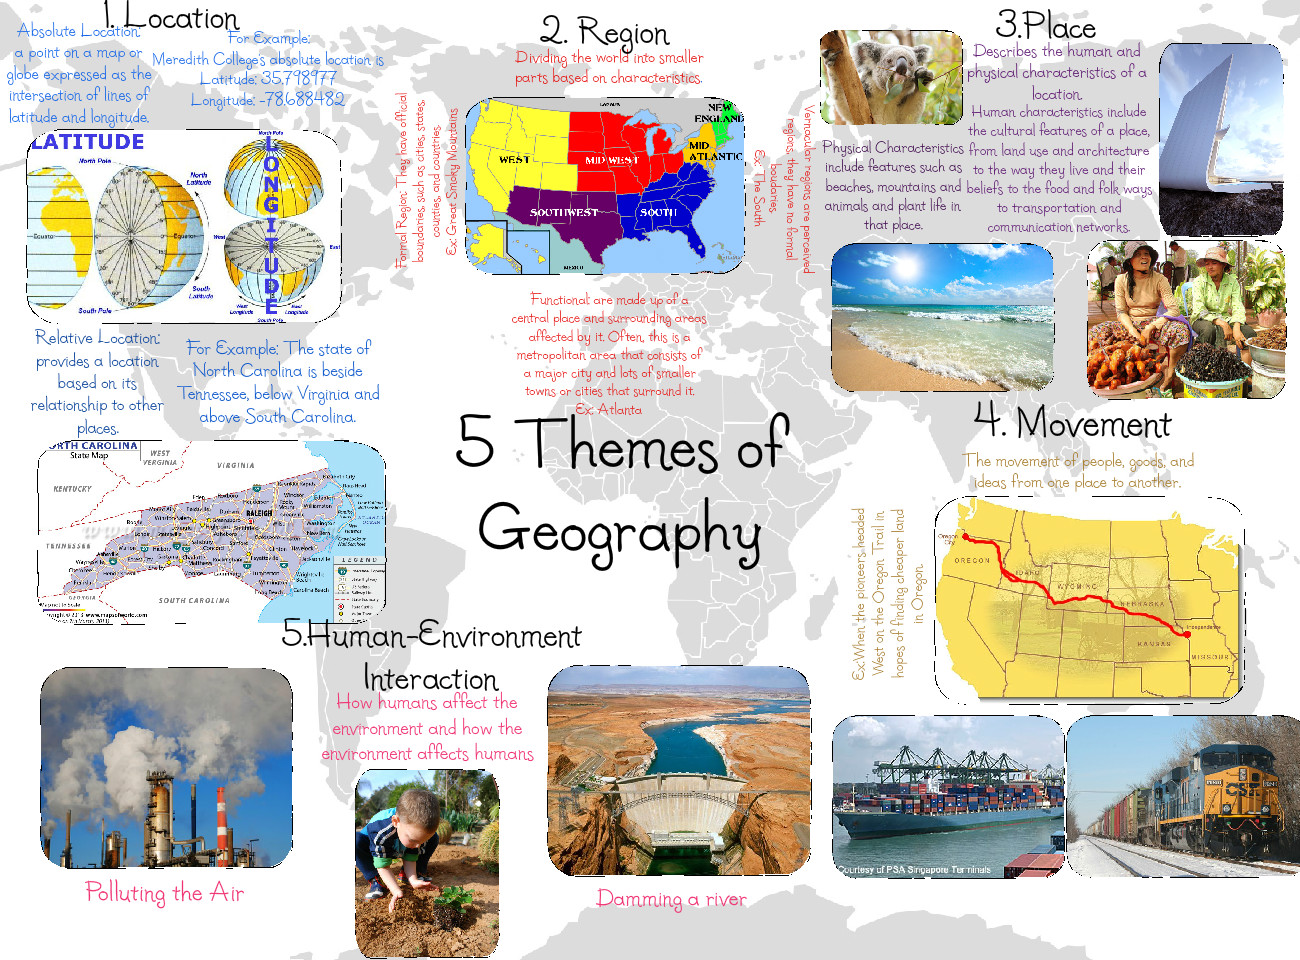 5 types of Geography